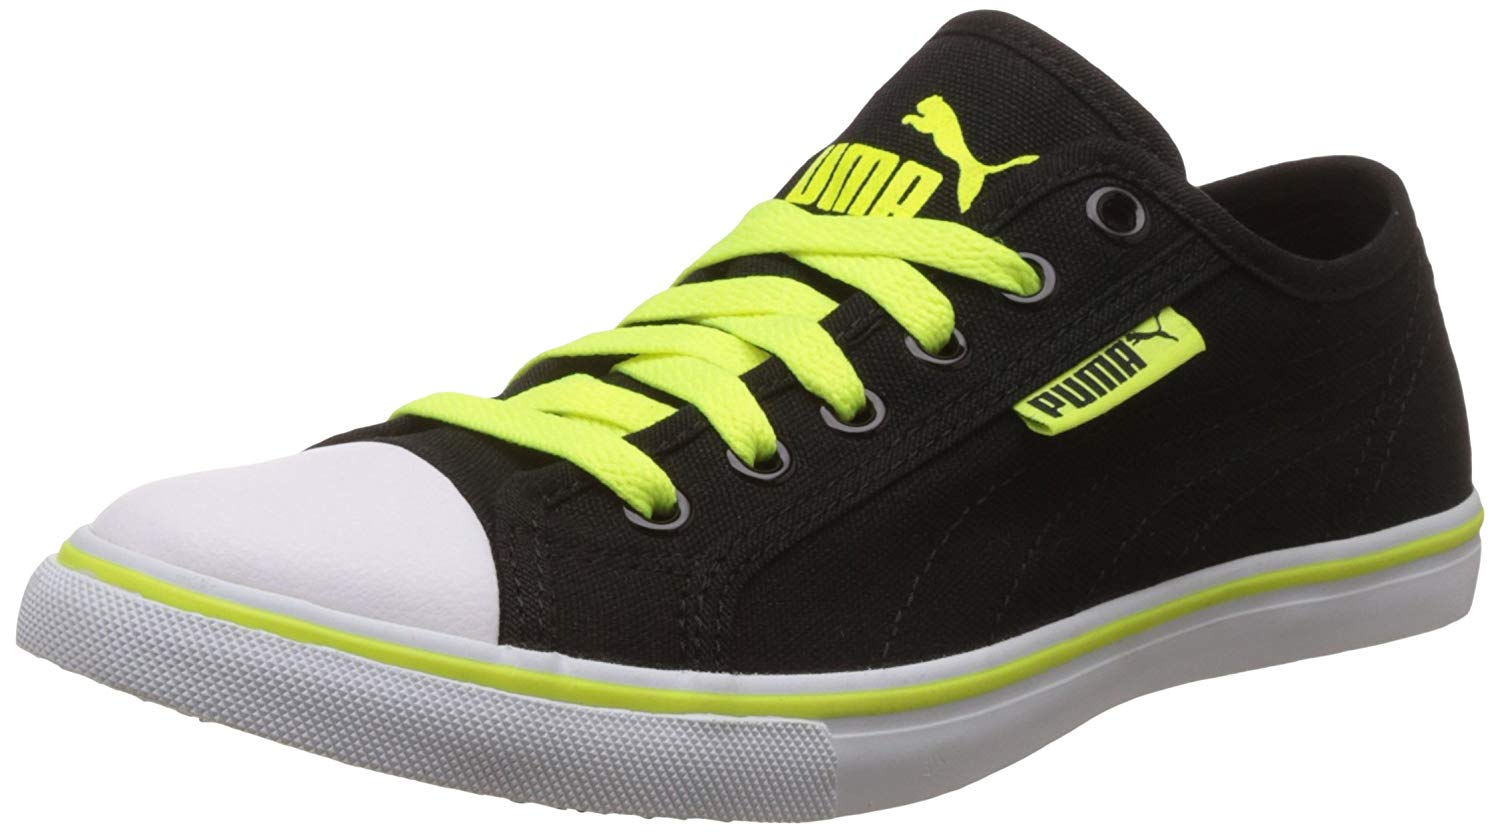 Size 4) Puma Women s Streetballer Dp Sneakers Offer on Amazon India ... 7b8e7fec63